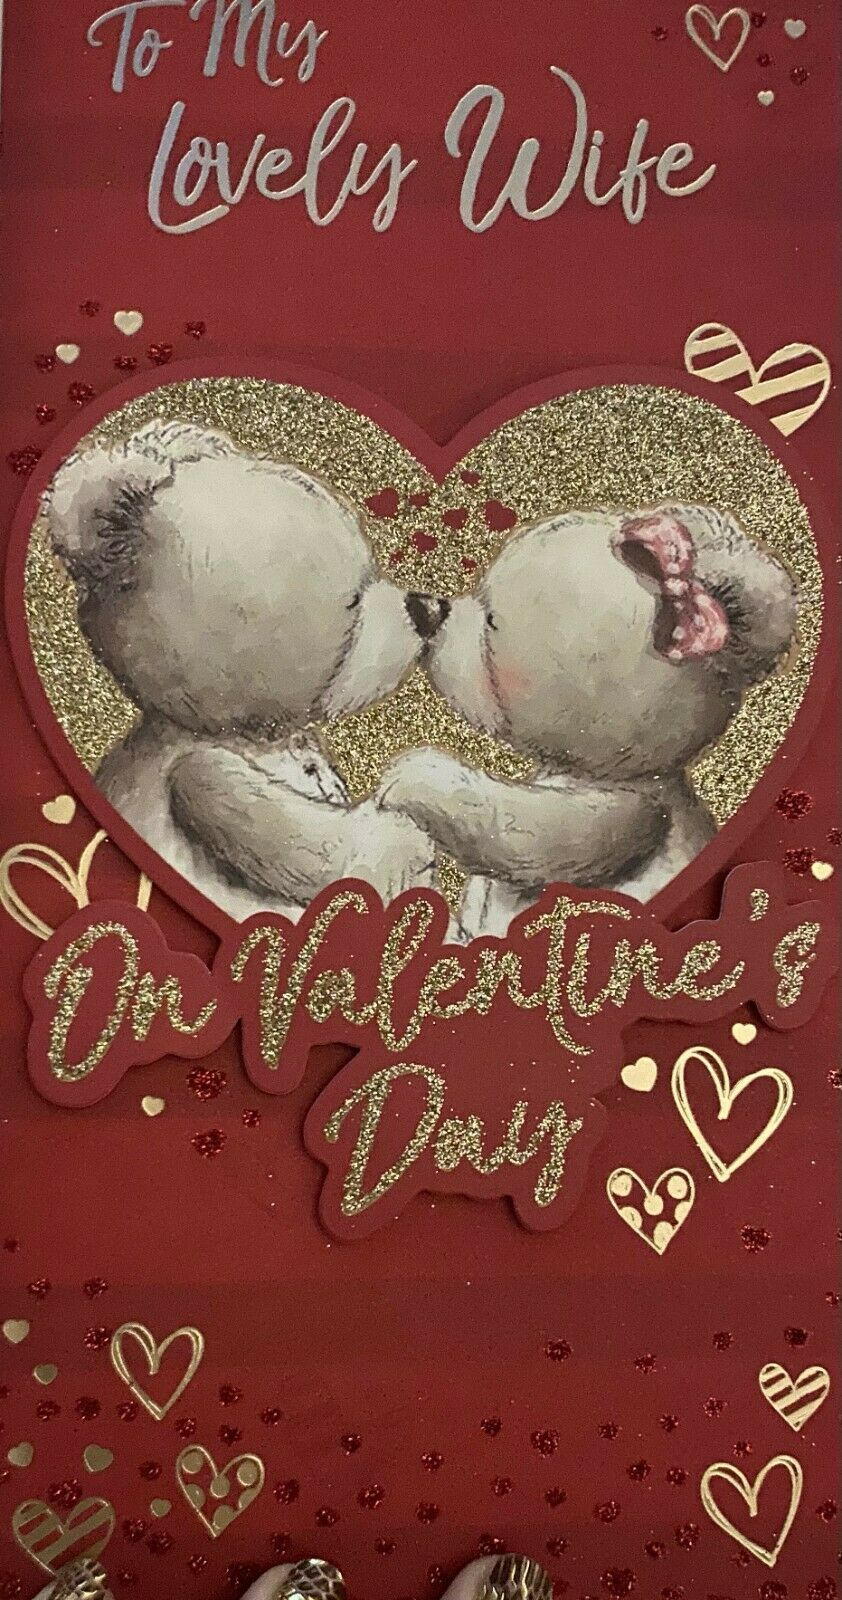 Valentine's Day Card To My Lovely Wife - Teddies